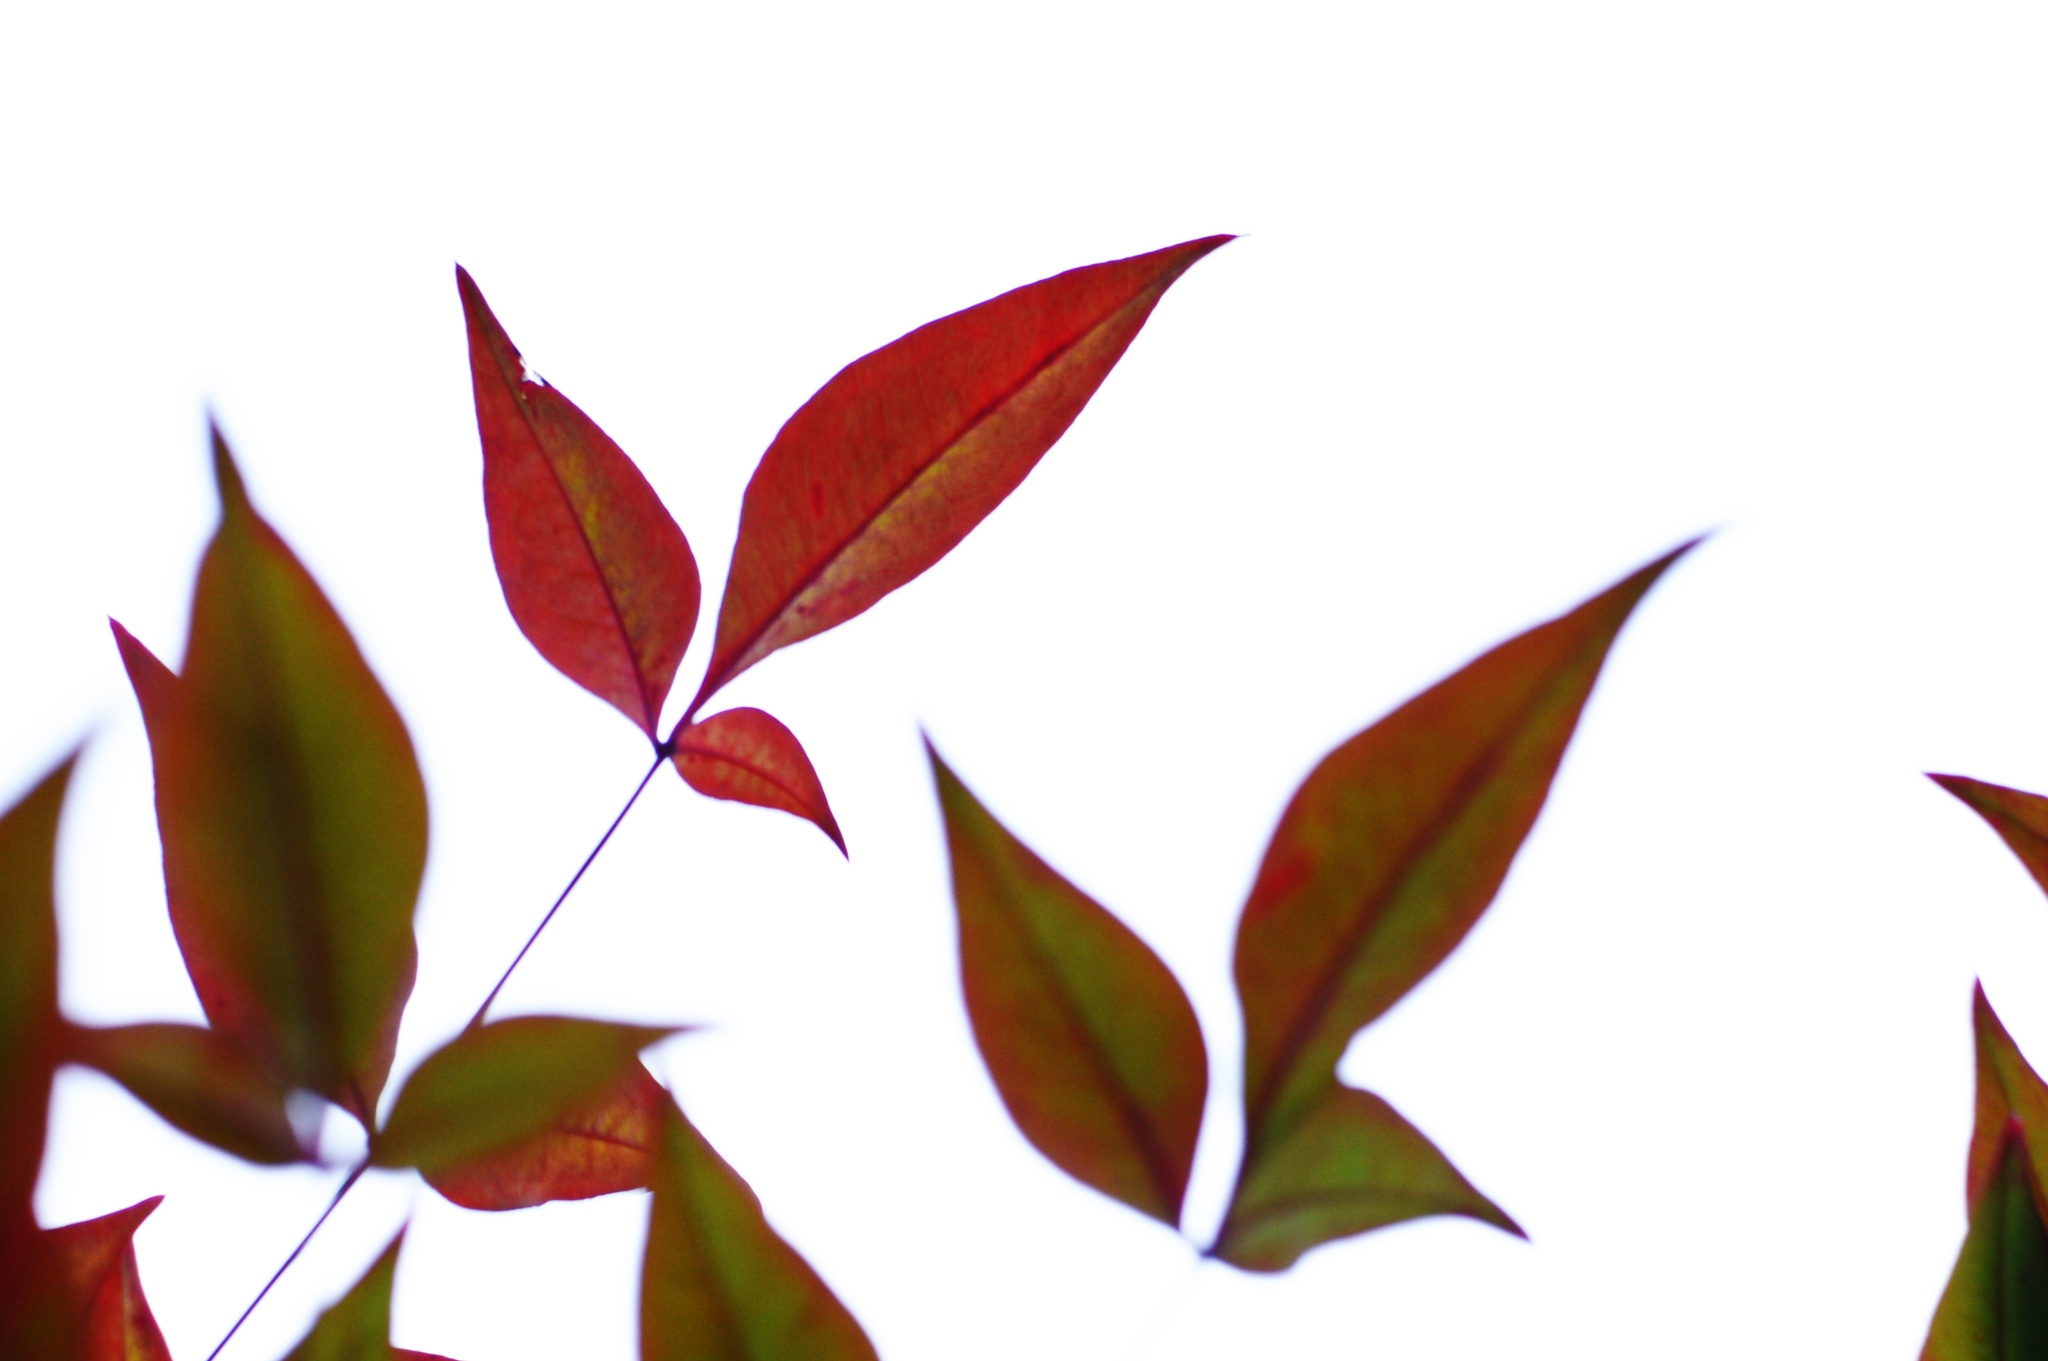 RED LEAVES by lorena.rinaudo.9